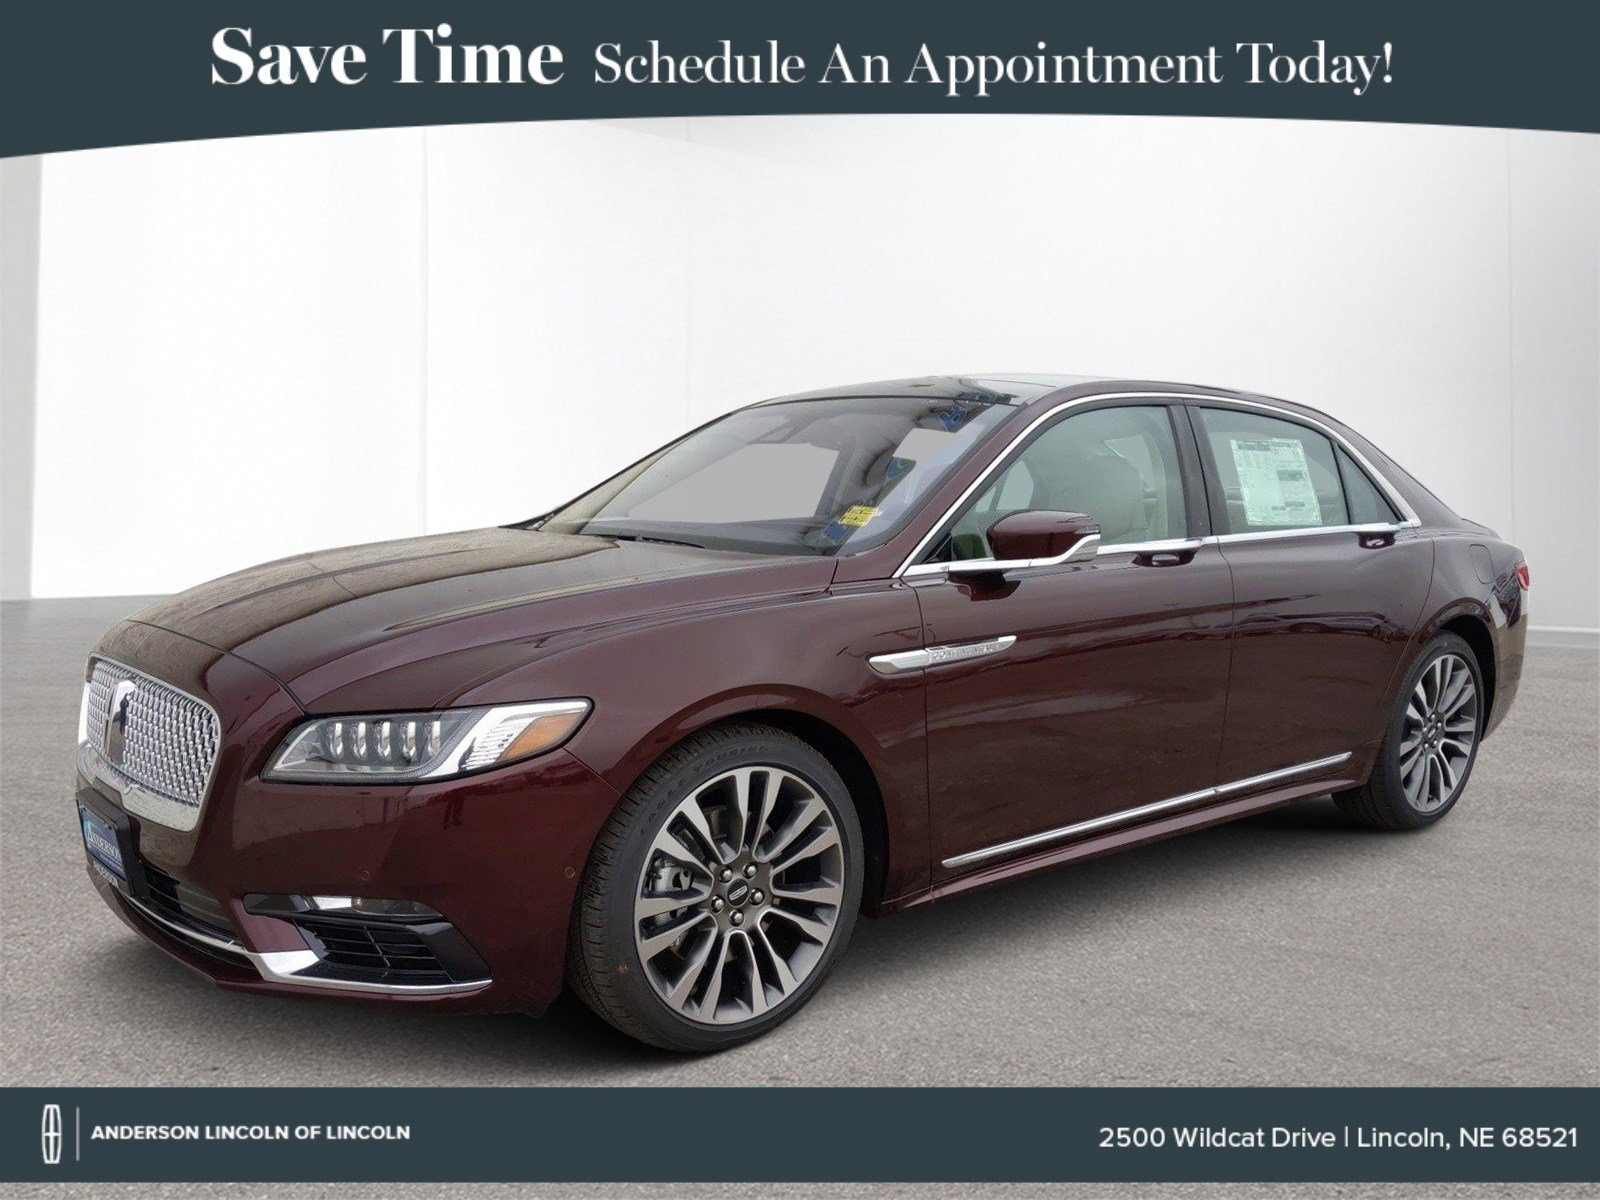 New 2020 Lincoln Continental Reserve 4dr Car for sale in Lincoln NE